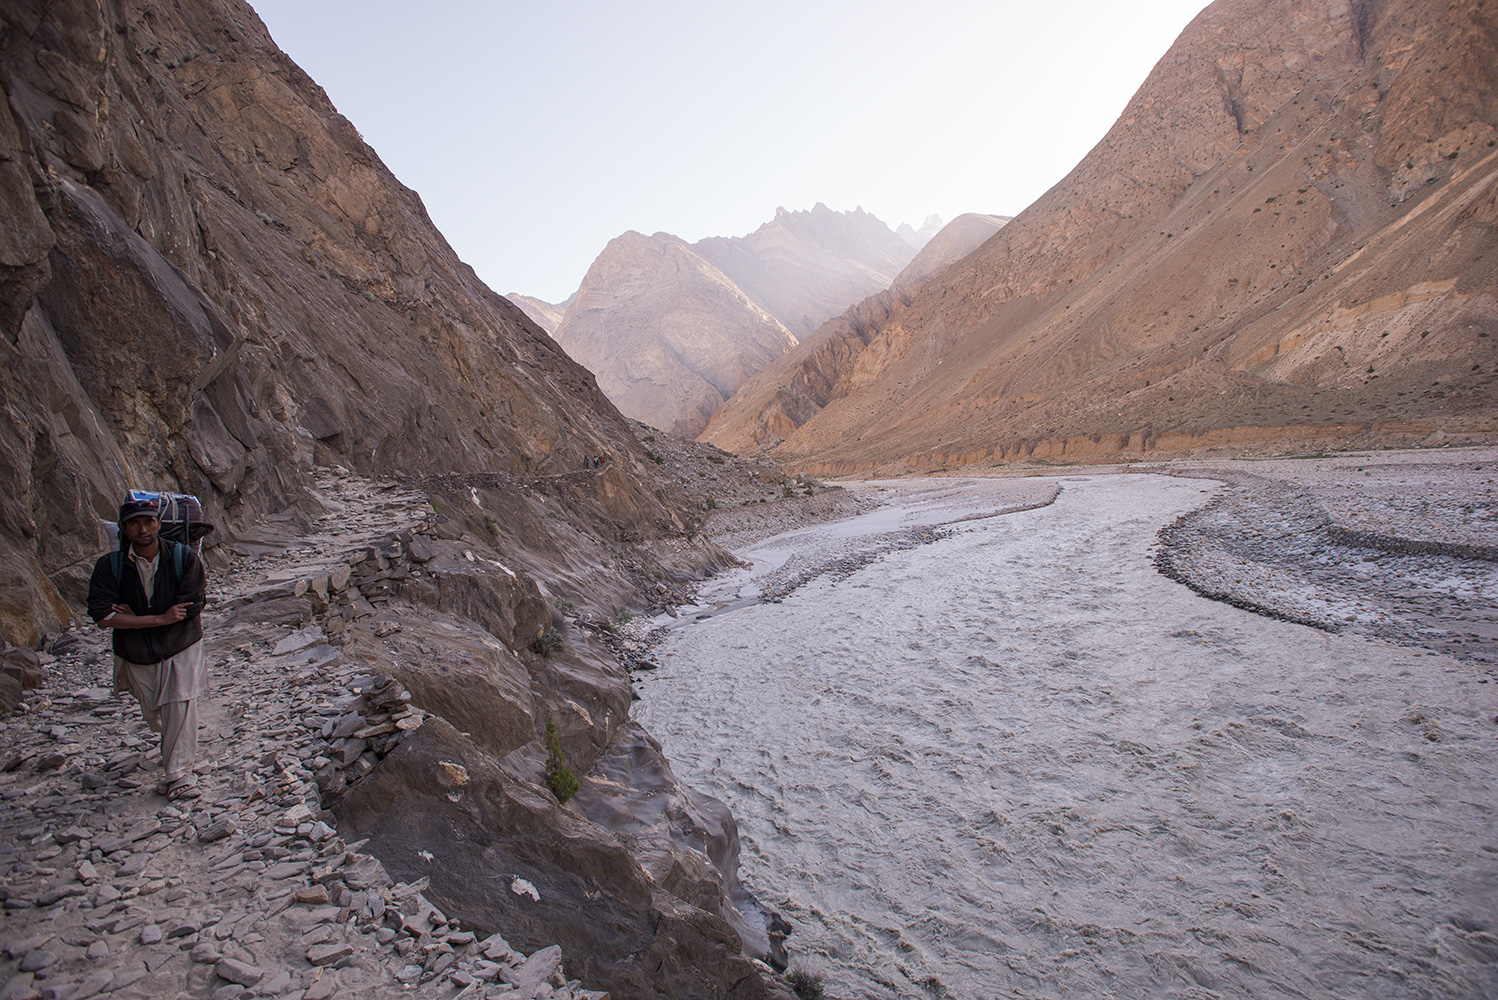 On the new trail between Korophon and Jhola camps. This is the river flowing from the Panmah Glacier